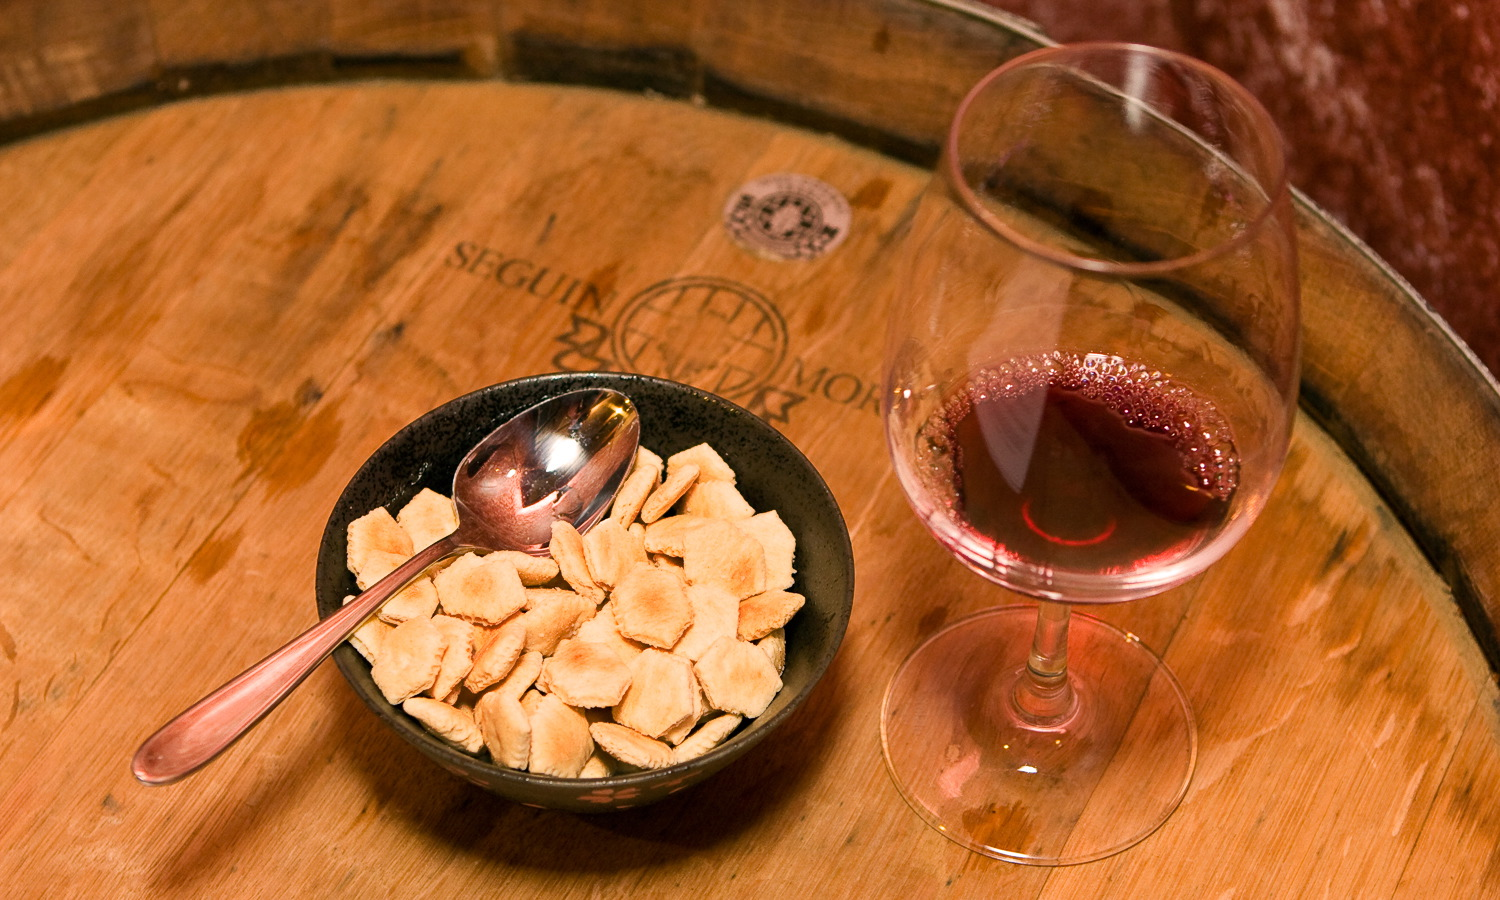 Oyster crackers and red wine on a wine barrel